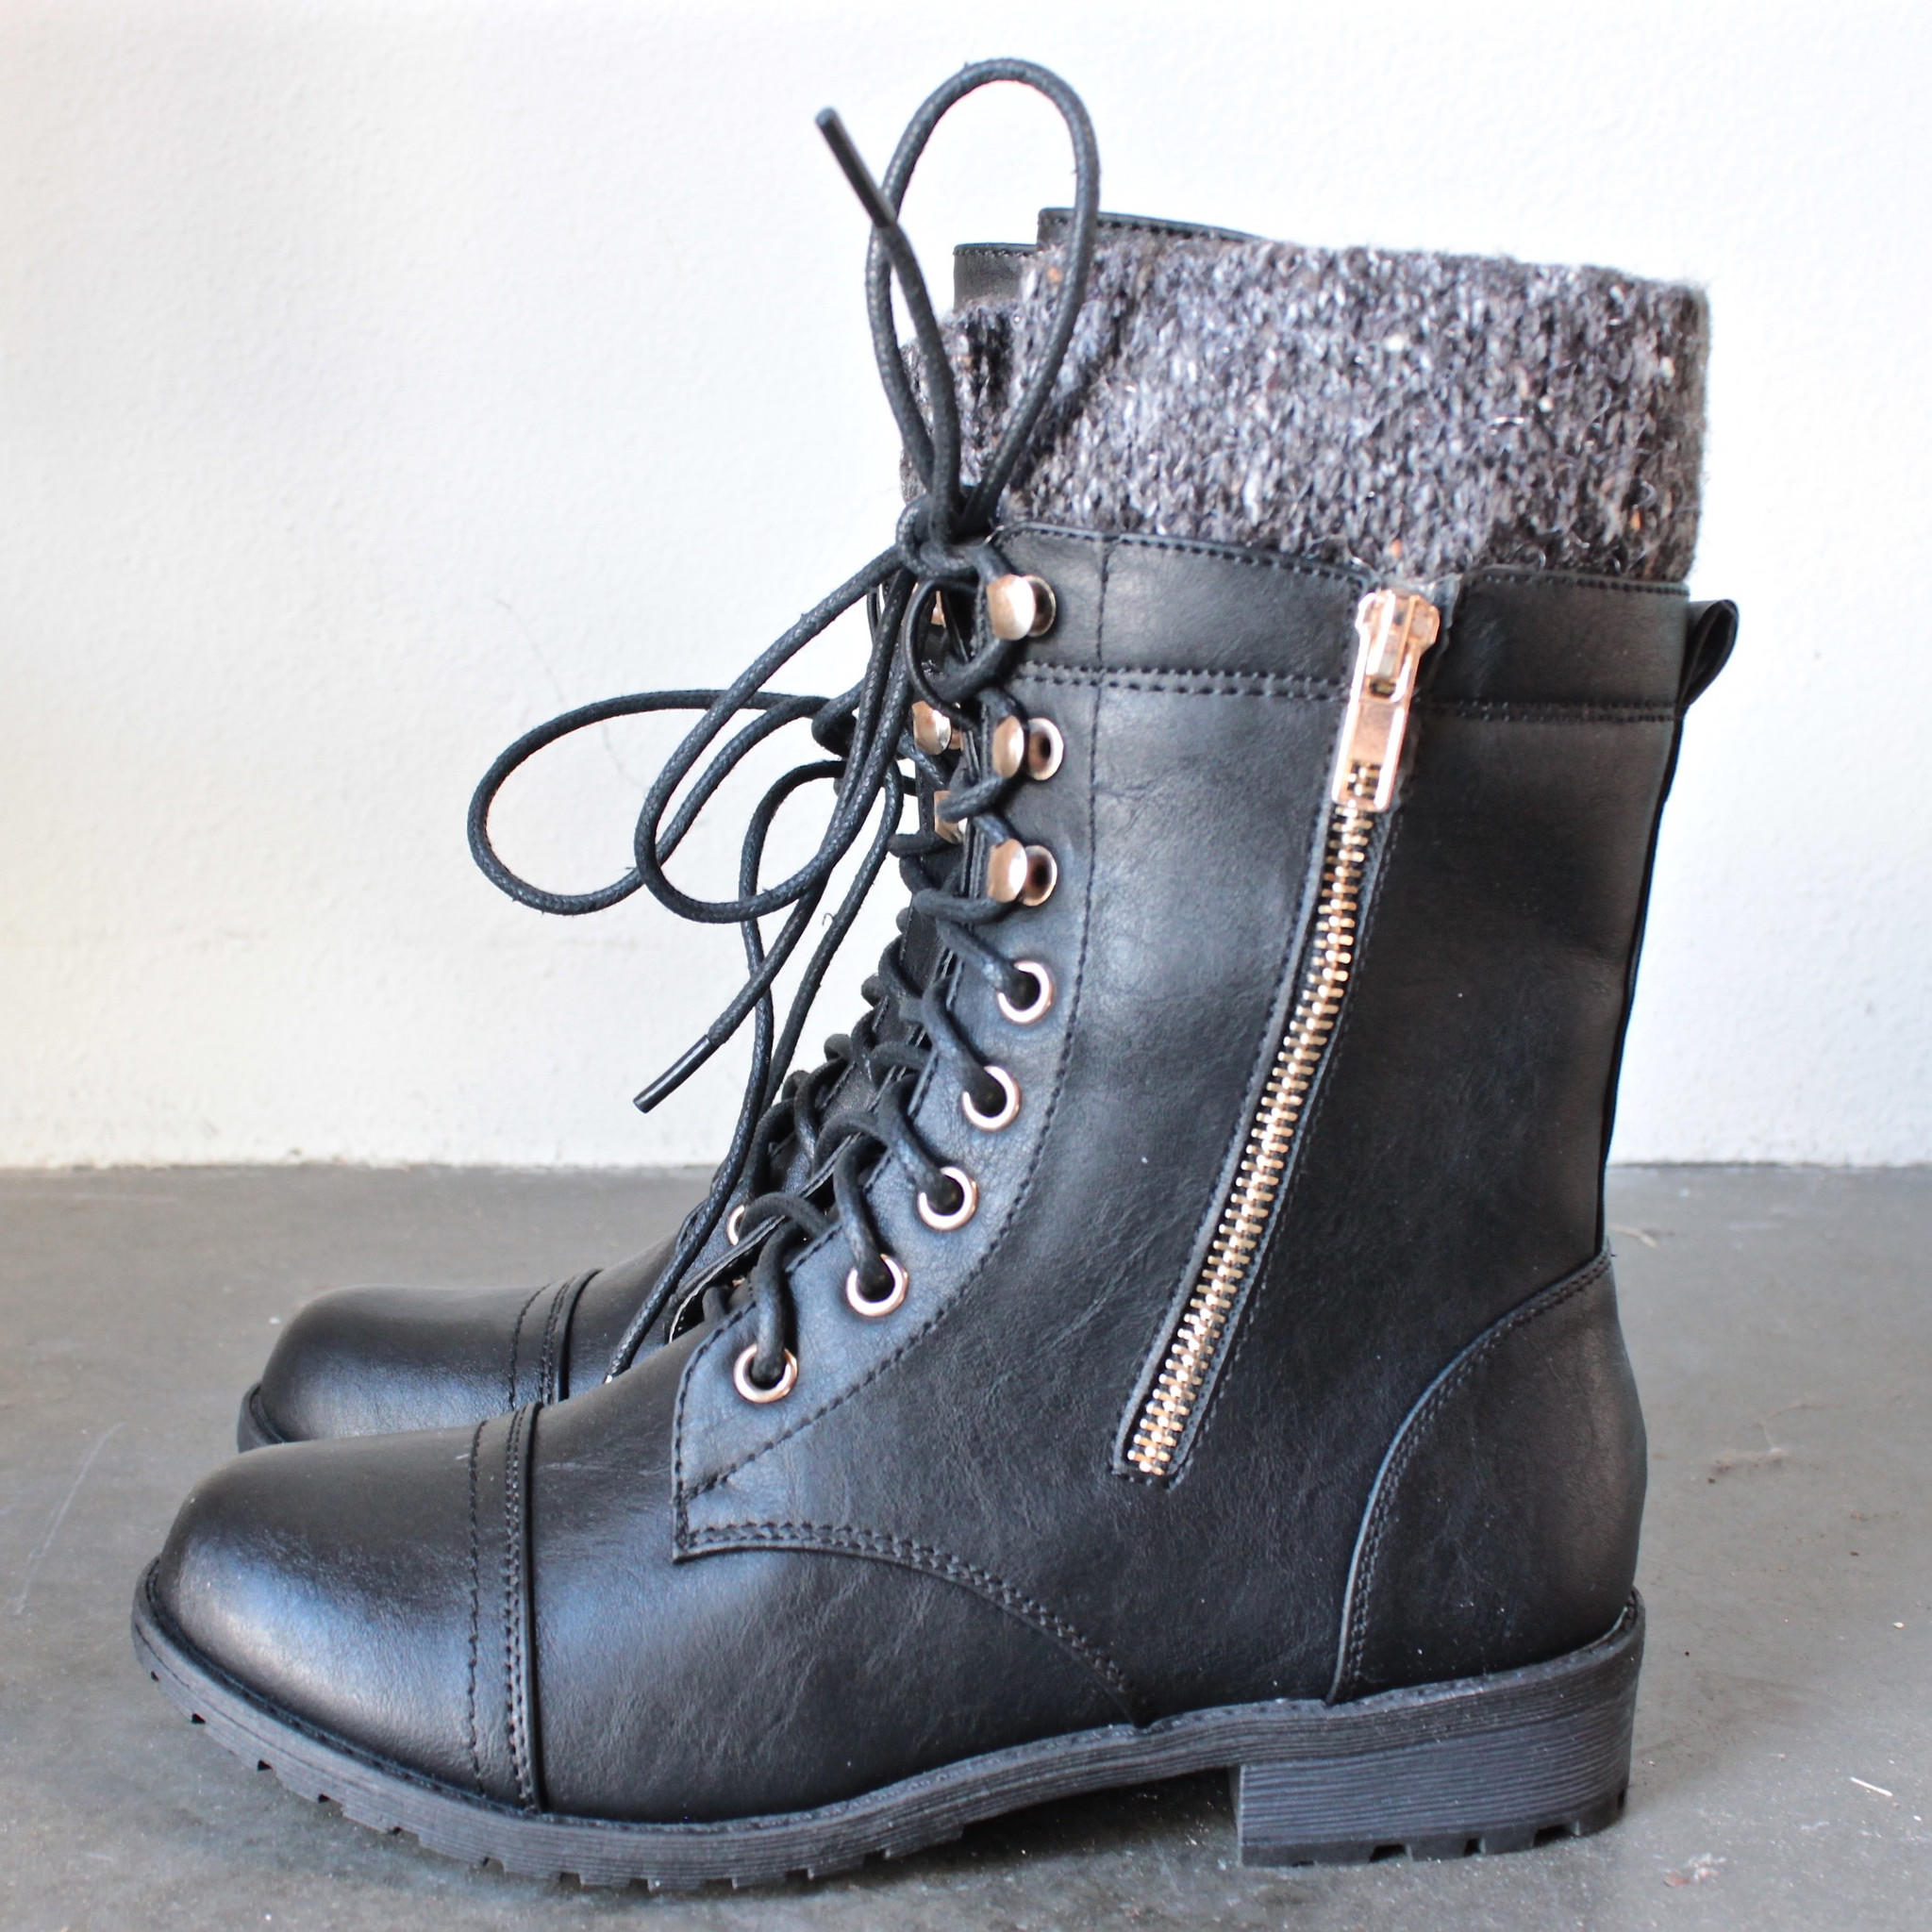 the black laced up combat sweater boots from shophearts | LOW CUT